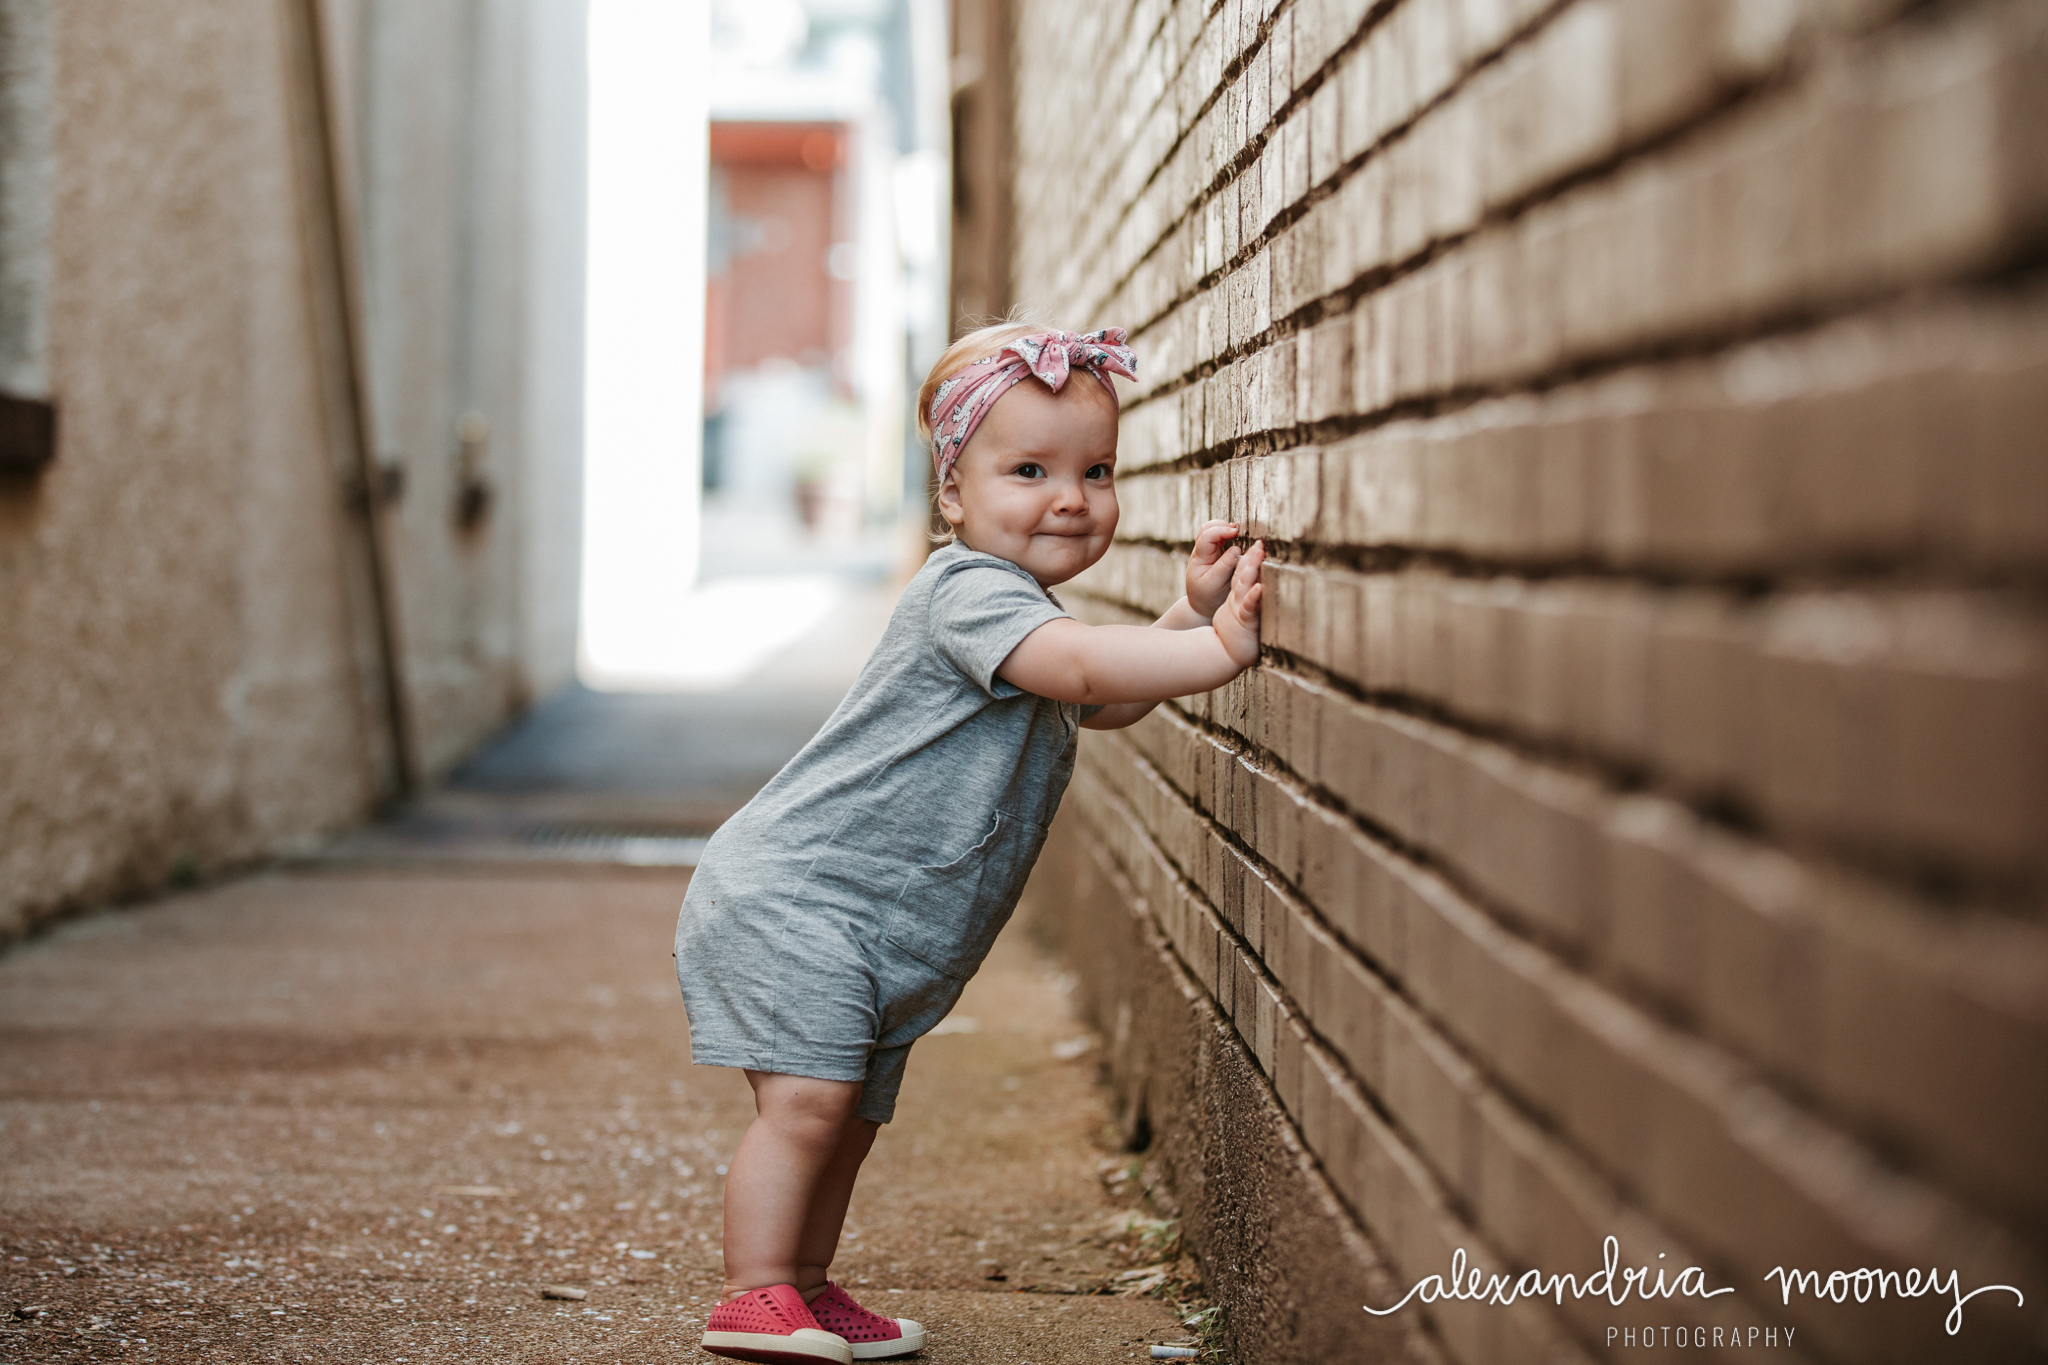 AnnieintheAlley_Watermarked-4.jpg